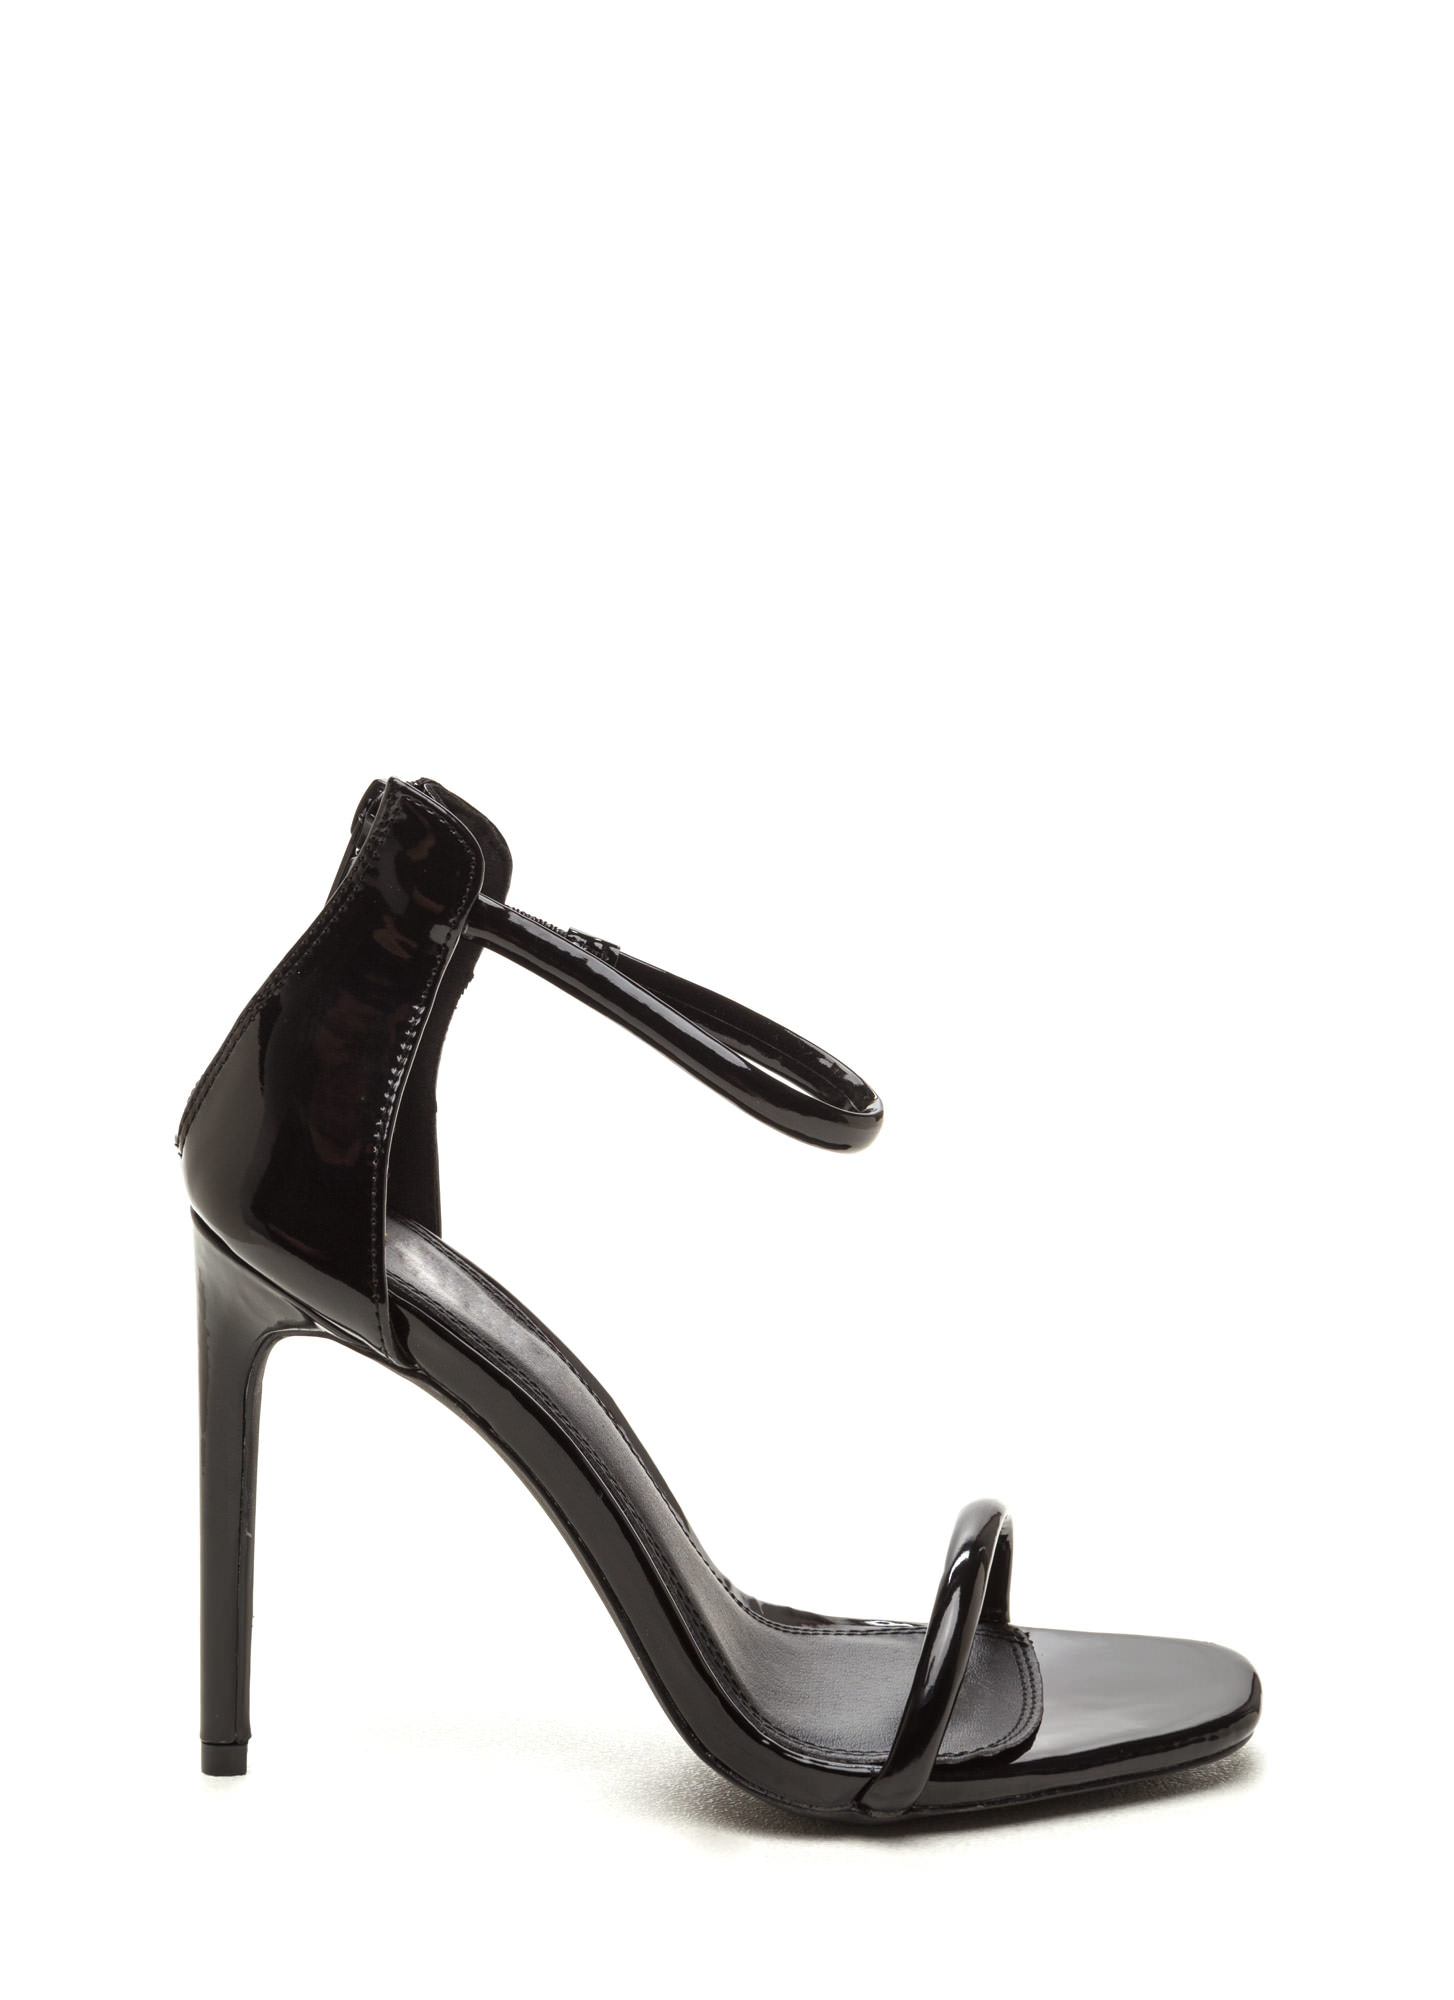 Just One Faux Patent Ankle Strap Heels BLACK NUDE - GoJane.com